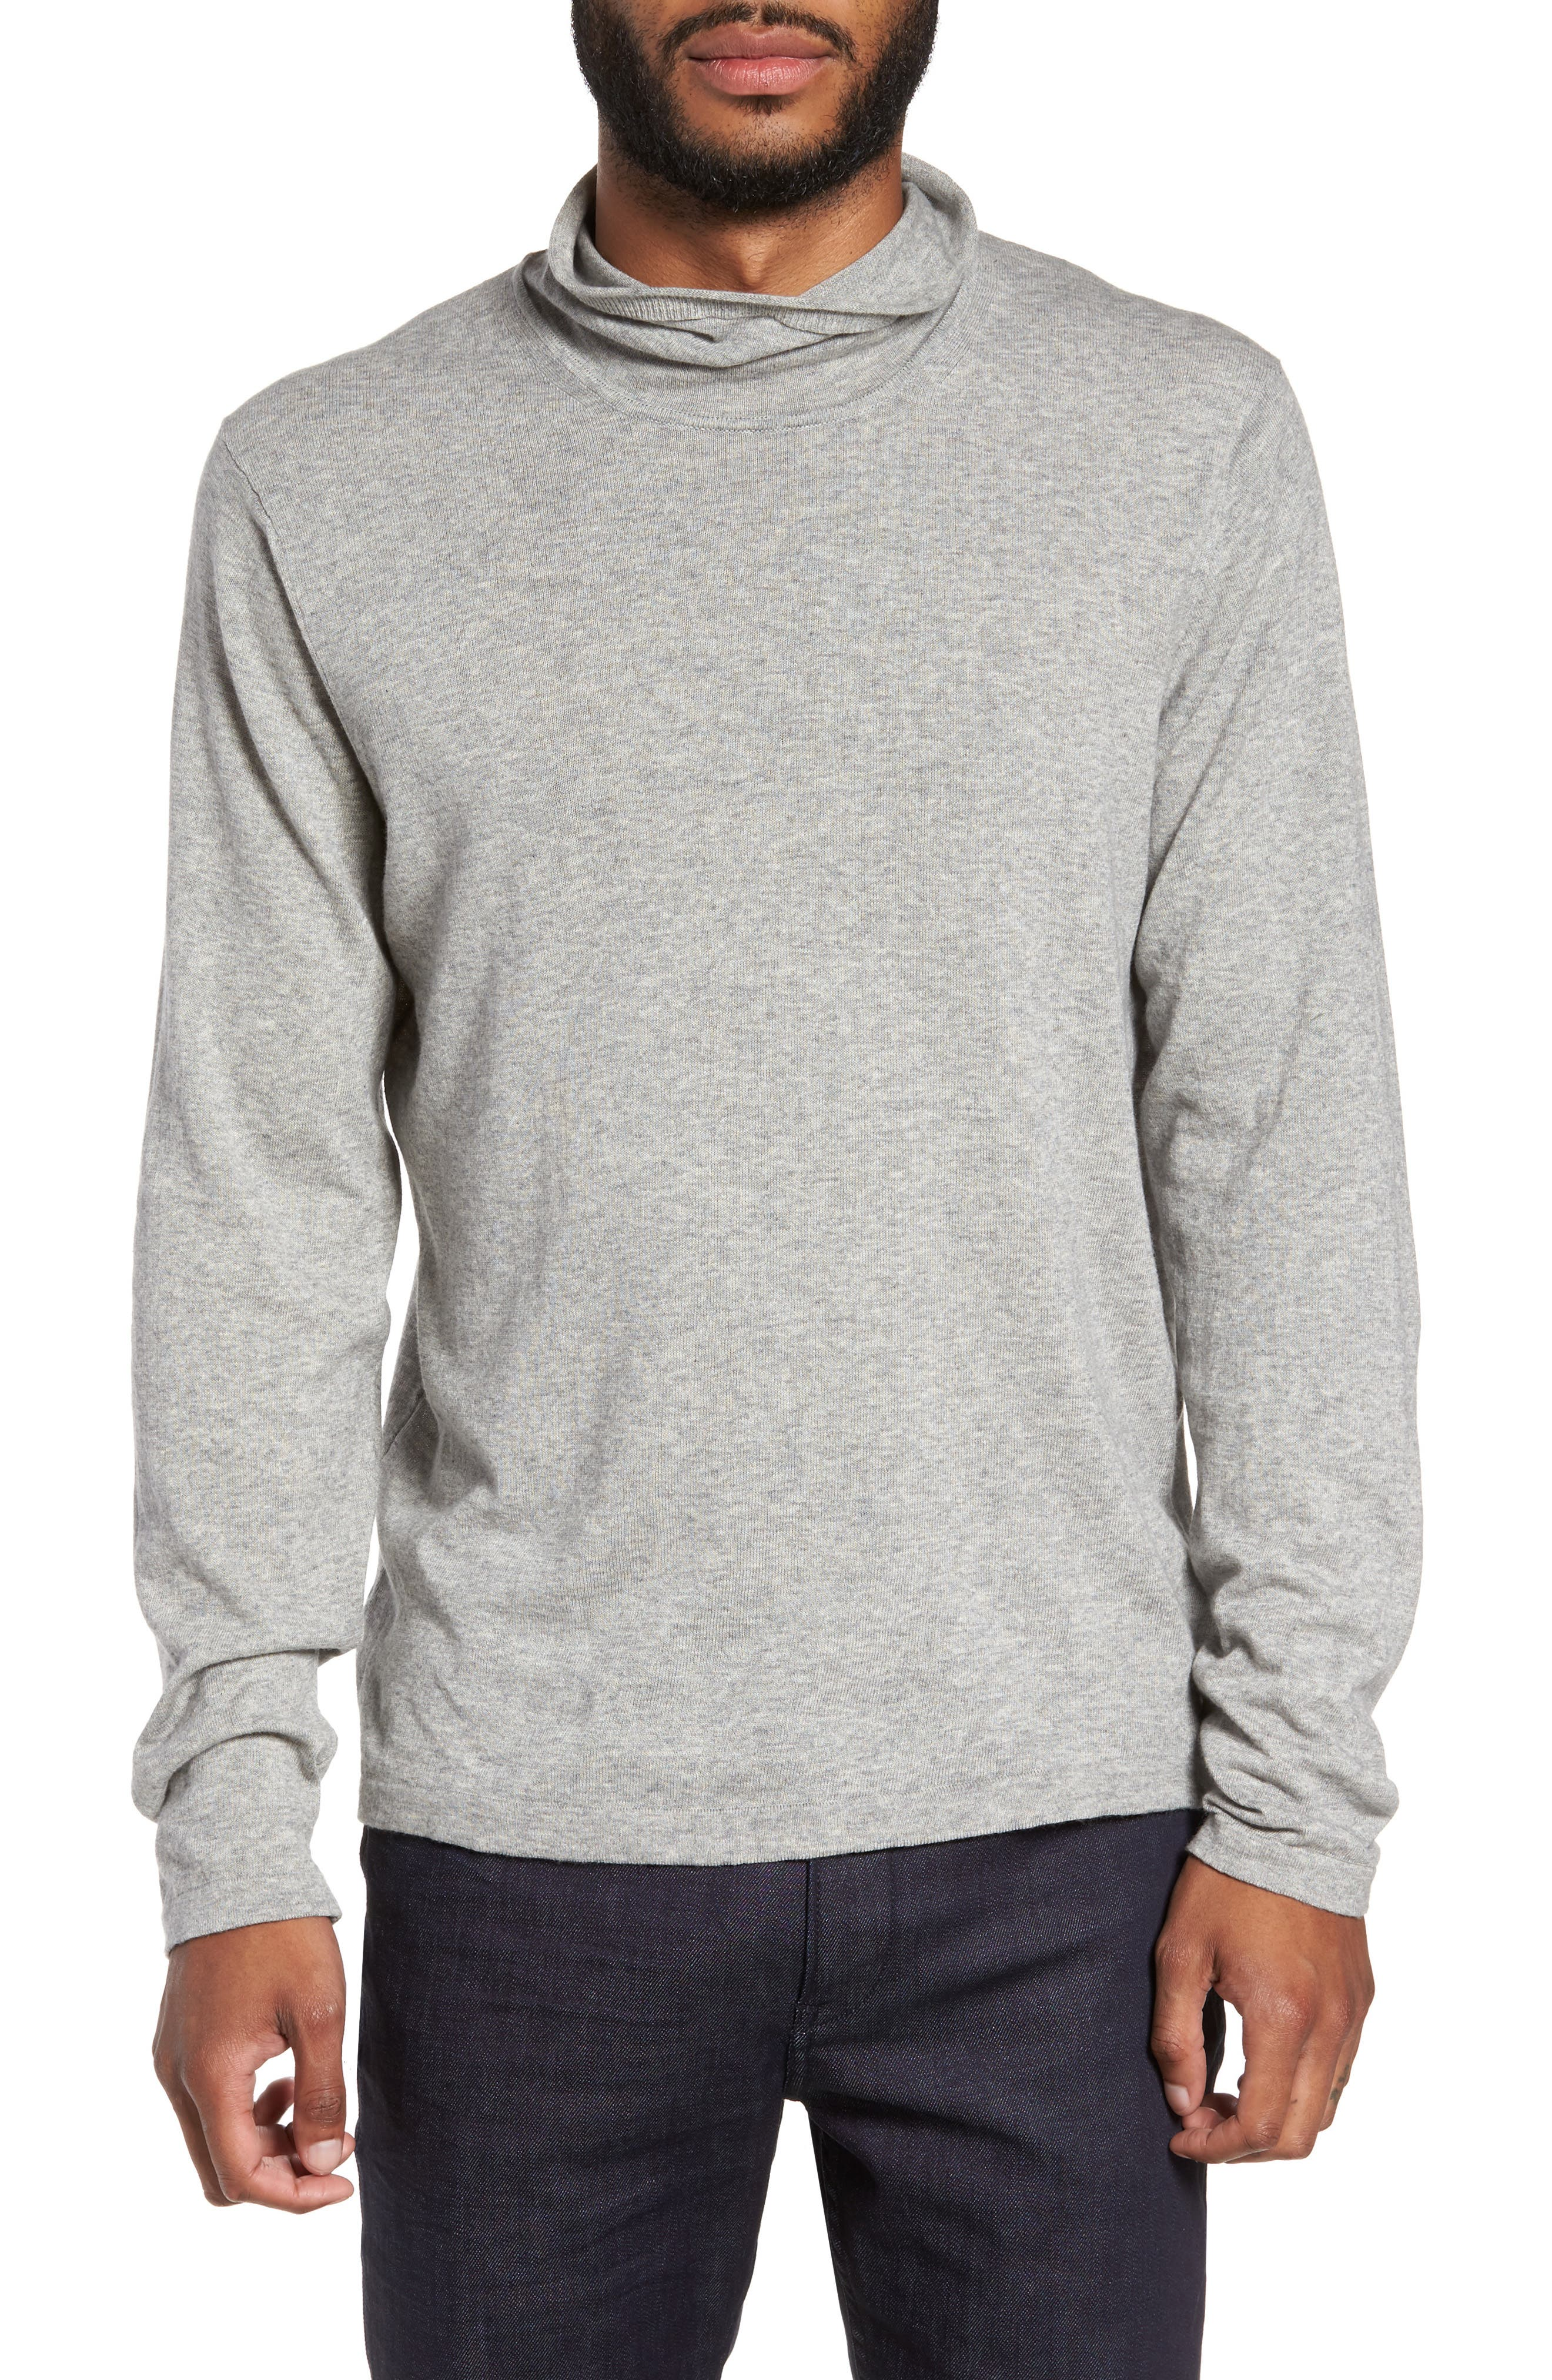 Hess Wool Turtleneck Sweater,                         Main,                         color, Light Grey